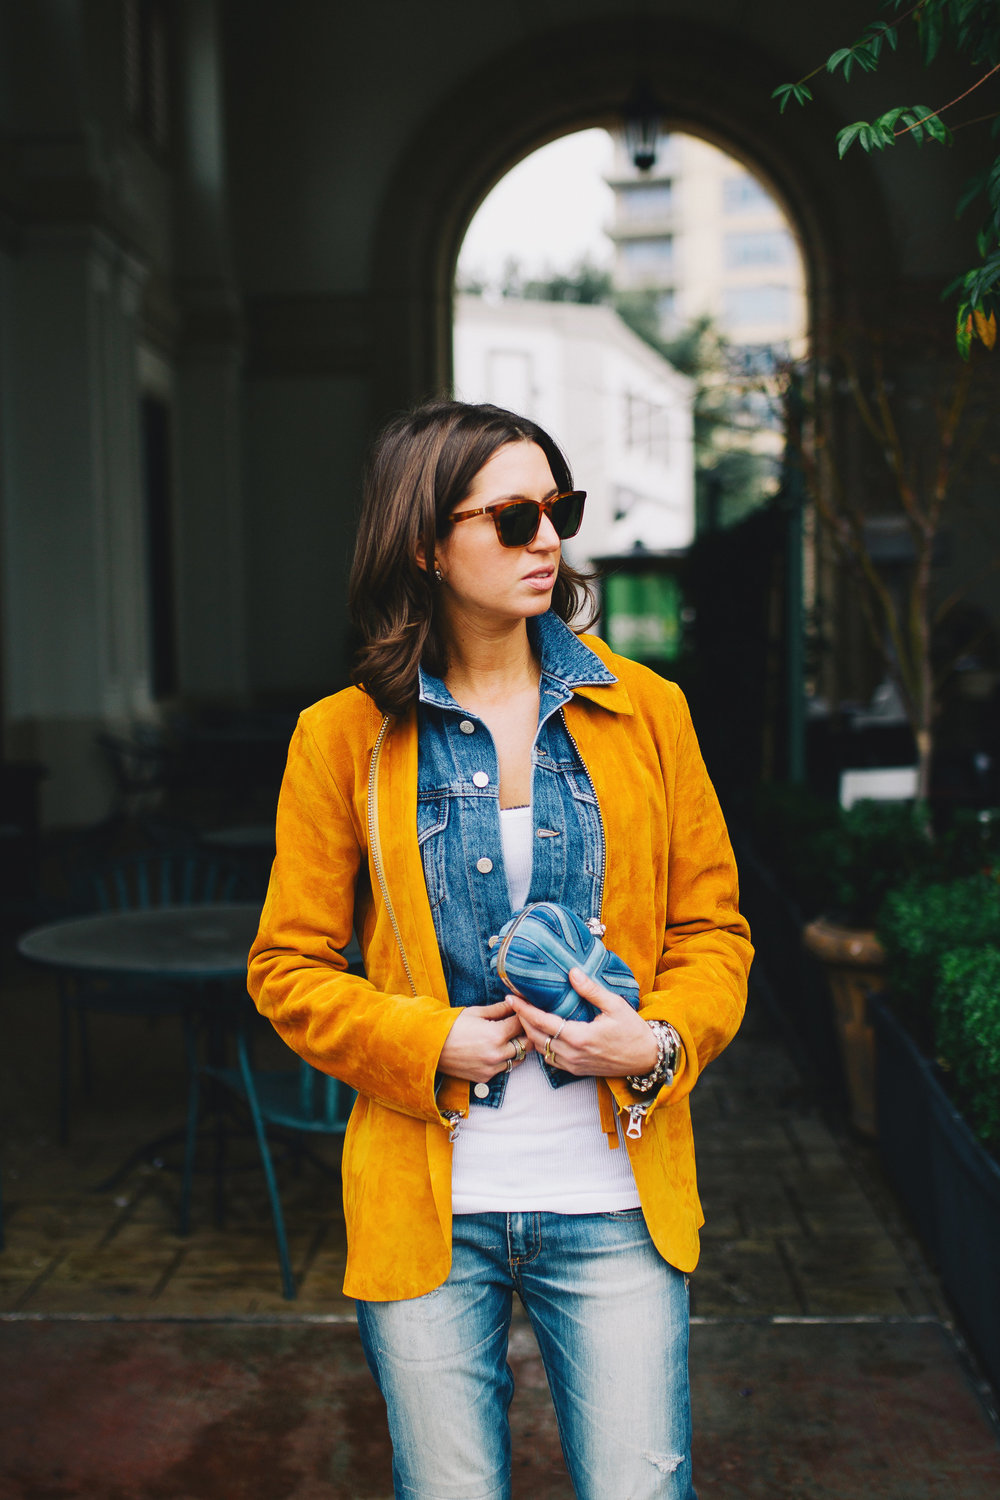 Tan suede and denim layered jackets